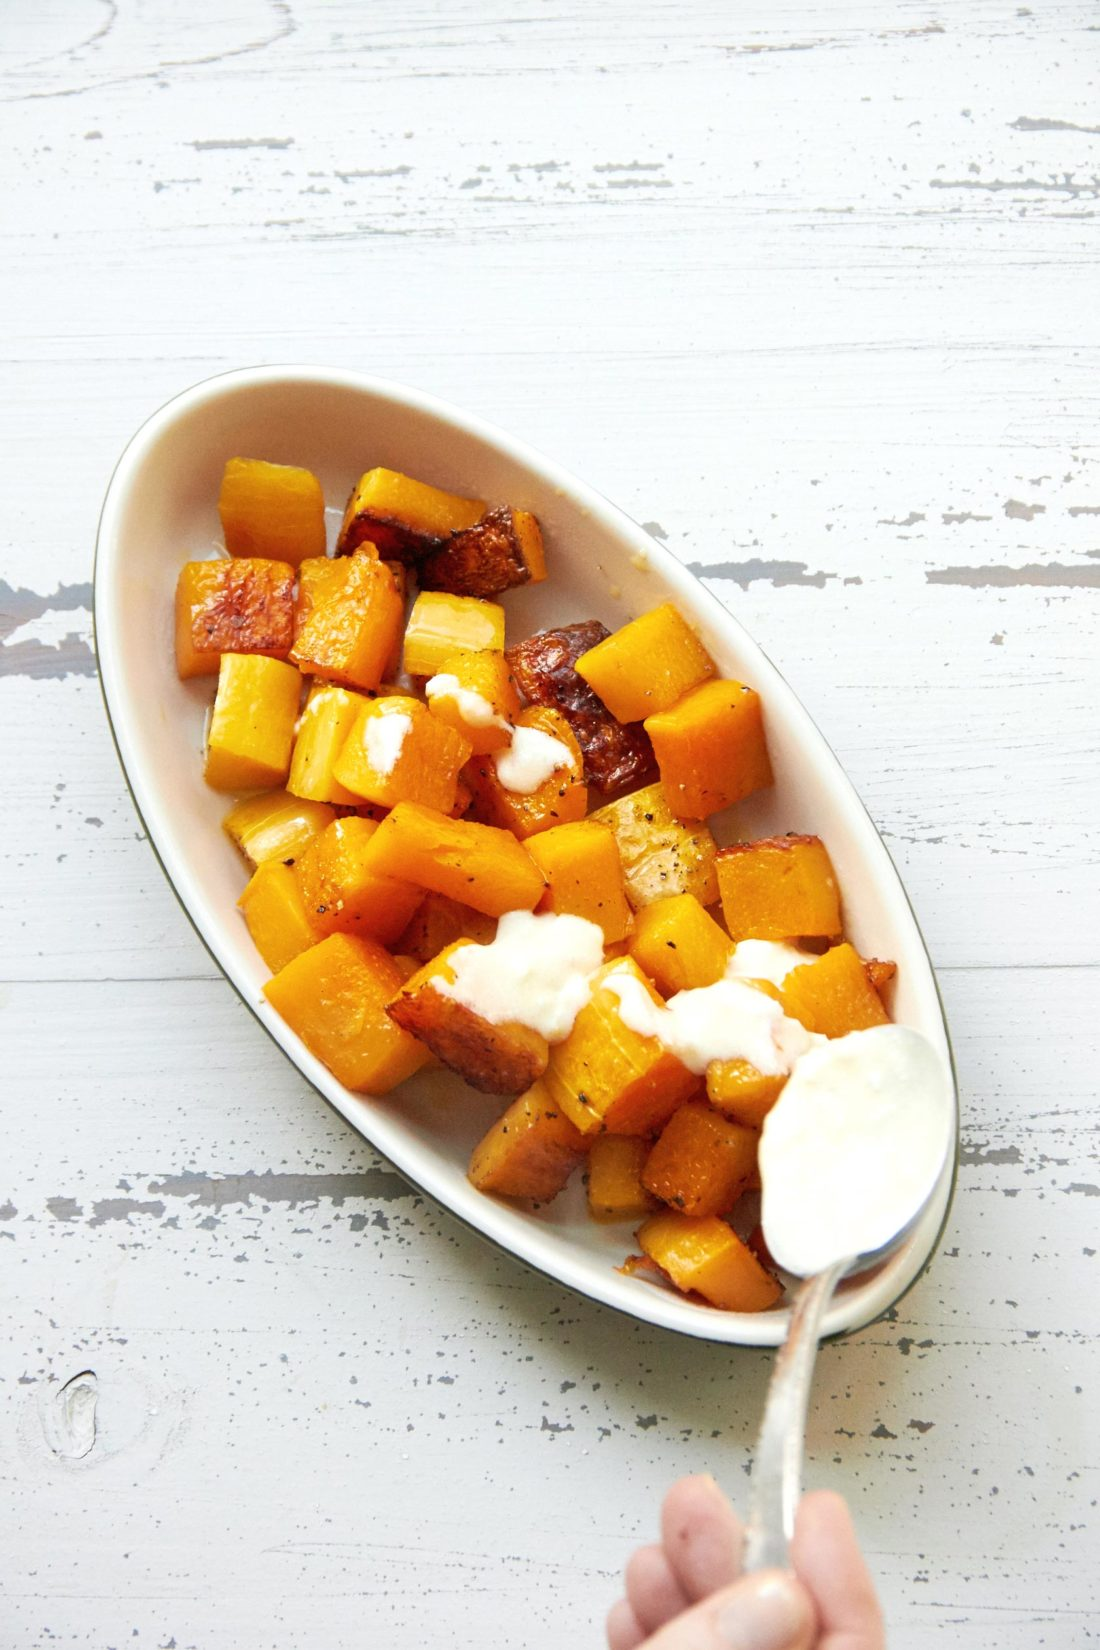 Roasted Butternut Squash with Creamy Sauce